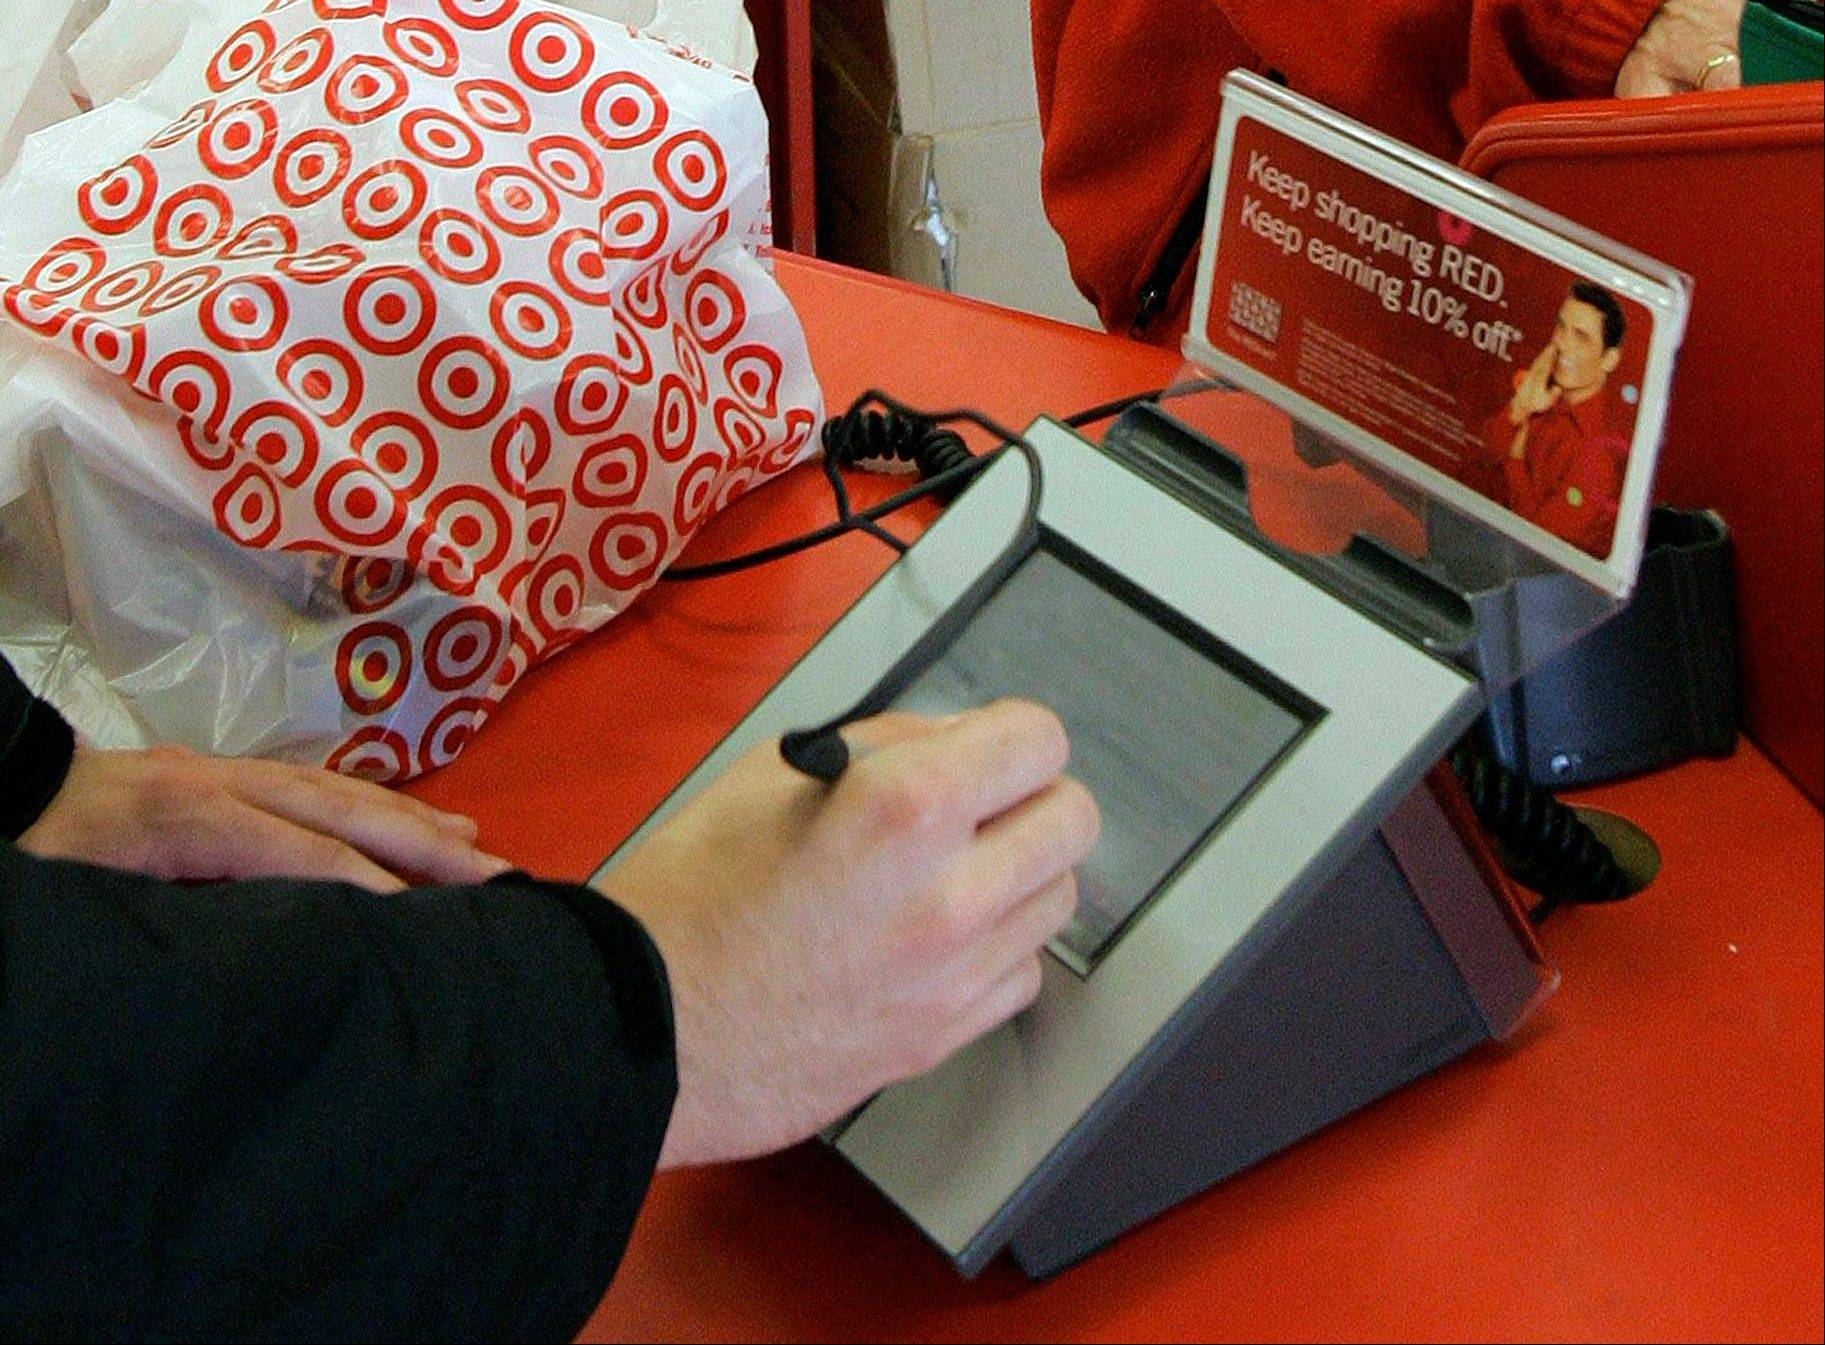 A customer signs his credit card receipt at a Target store in Tallahassee, Fla. The U.S. is the juiciest target for hackers hunting credit card information and experts say incidents like the recent data theft at Target's stores will get worse before they get better.